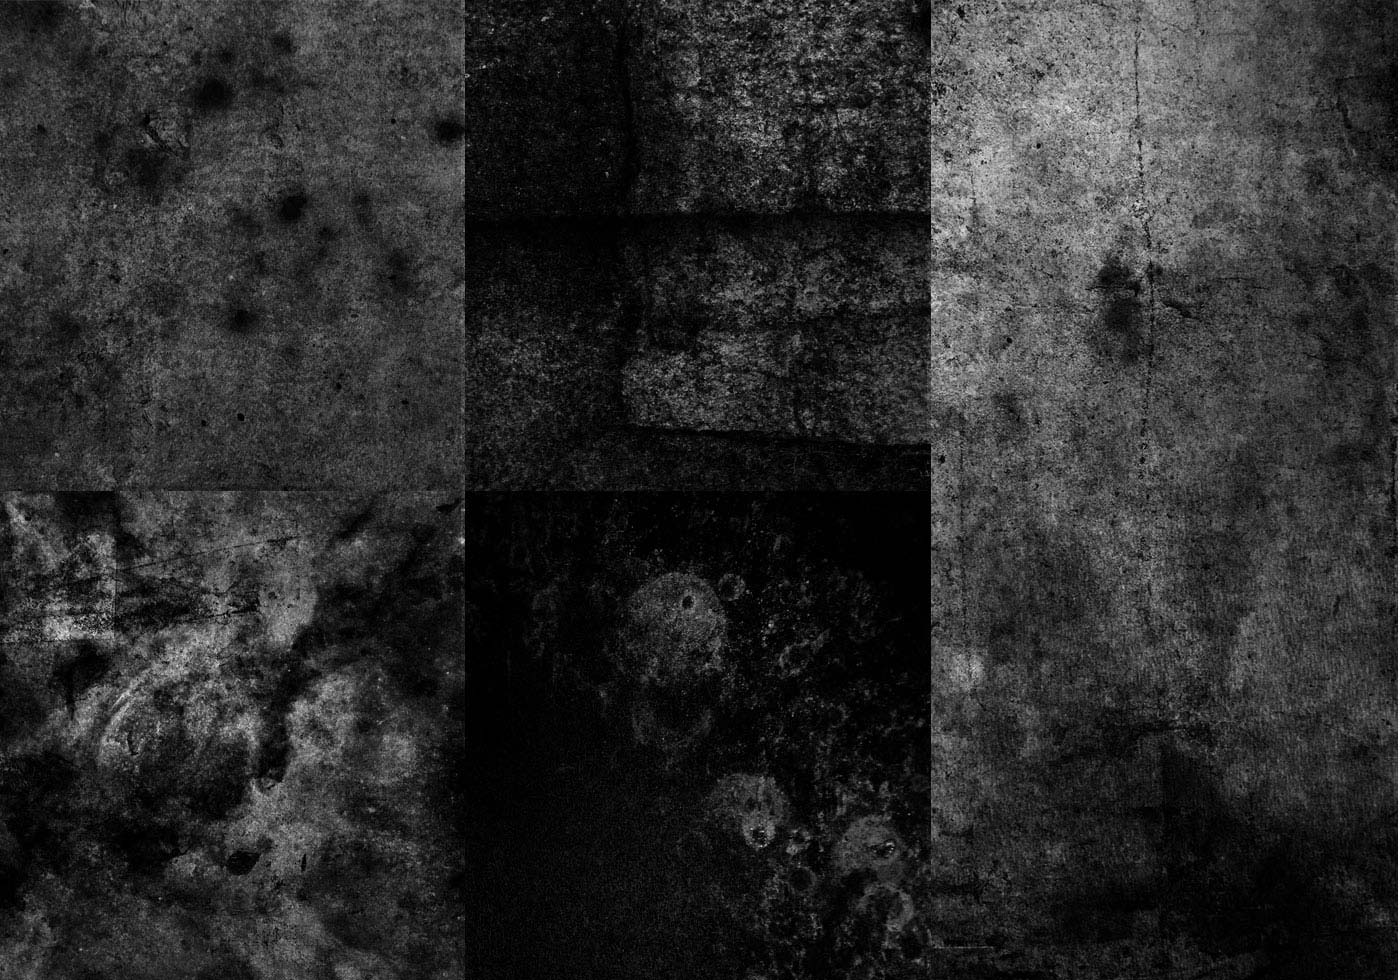 High Res Black and White Grunge Textures - Free Photoshop Brushes at Brusheezy!